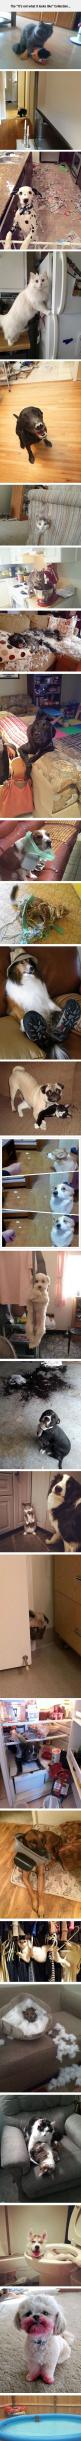 The It's Not What It Looks Like Collection cute animals dogs cat cats adorable dog puppy animal pets funny pictures funny animals funny pets funny dogs: Funny Pets, Funny Animals, Funny Dogs, Animals Funny, Animals Dogs, Funny Cat, Funny Pictures, Dogs Ca